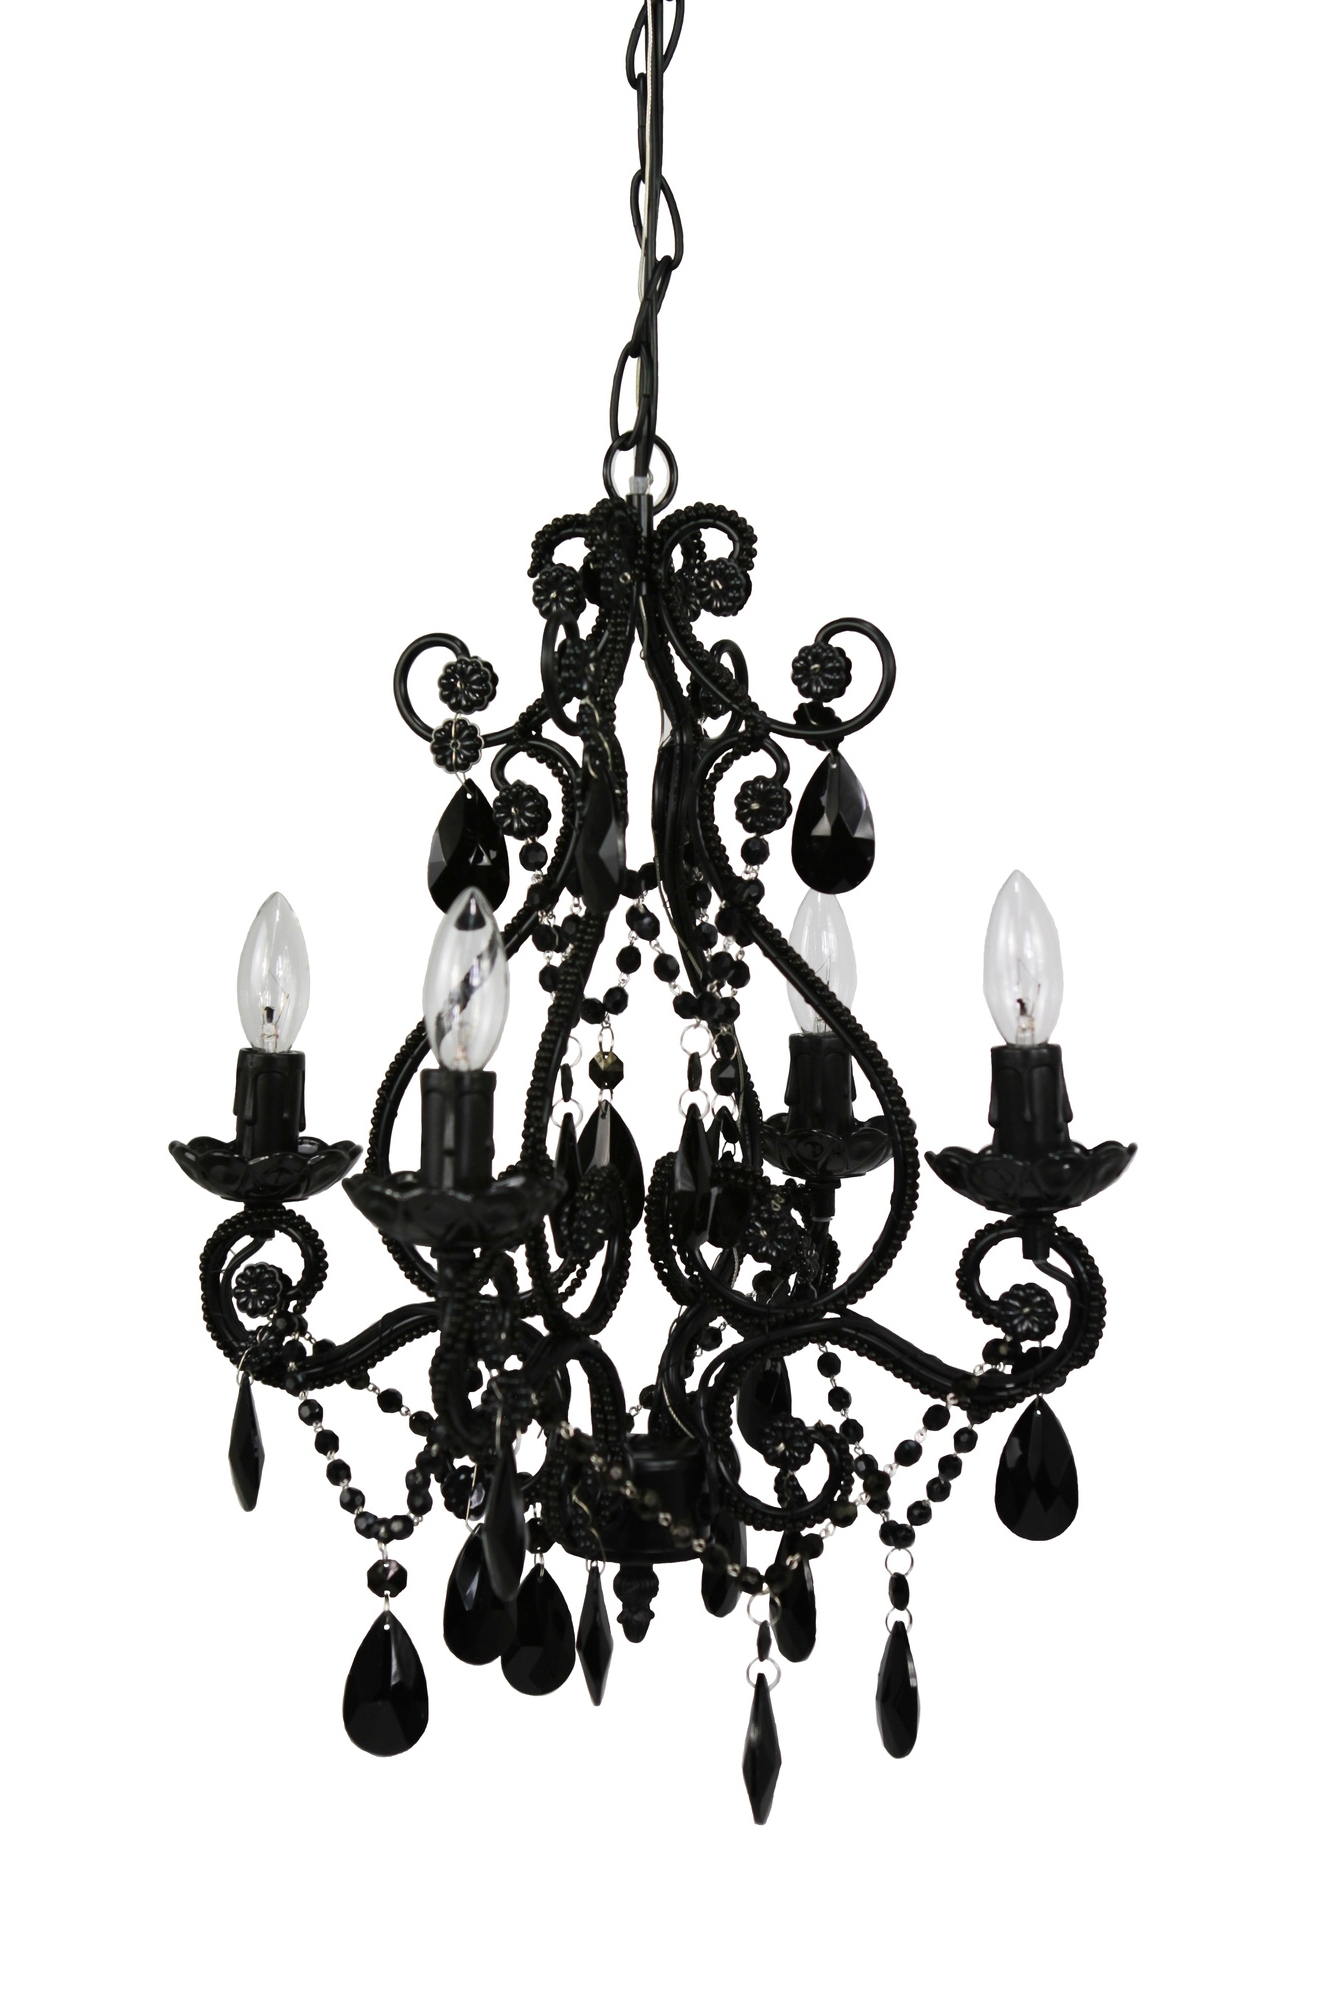 Cheap Chandelier, Chandeliers And Modern (View 13 of 15)